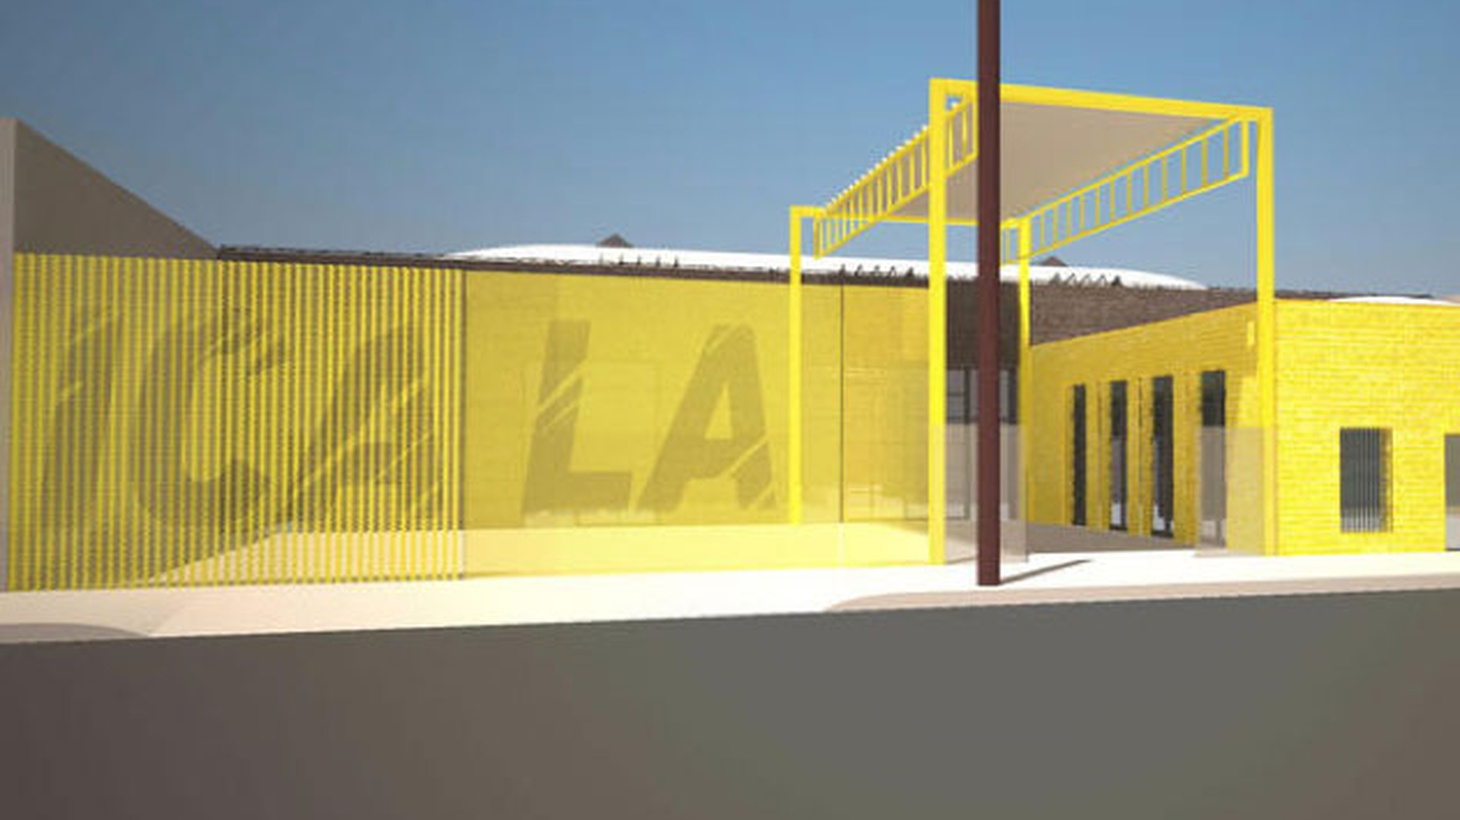 Edward Goldman talks about the welcome phenomenon of new museums opening up in LA.